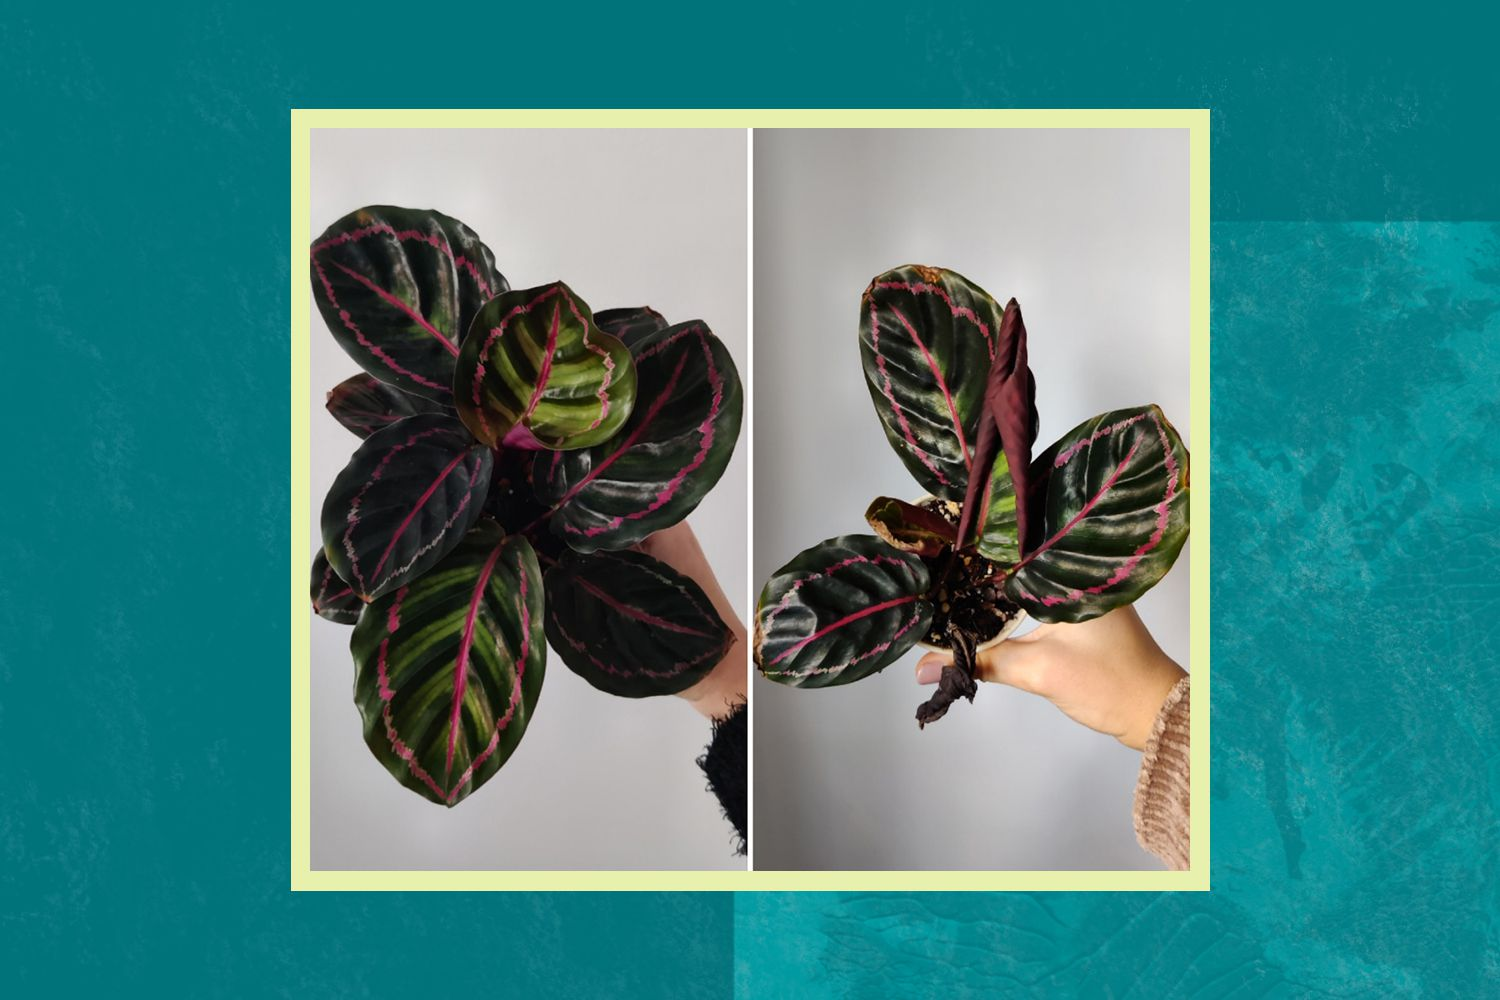 A dying a calathea. Left: January 2021 and Right: March 2021